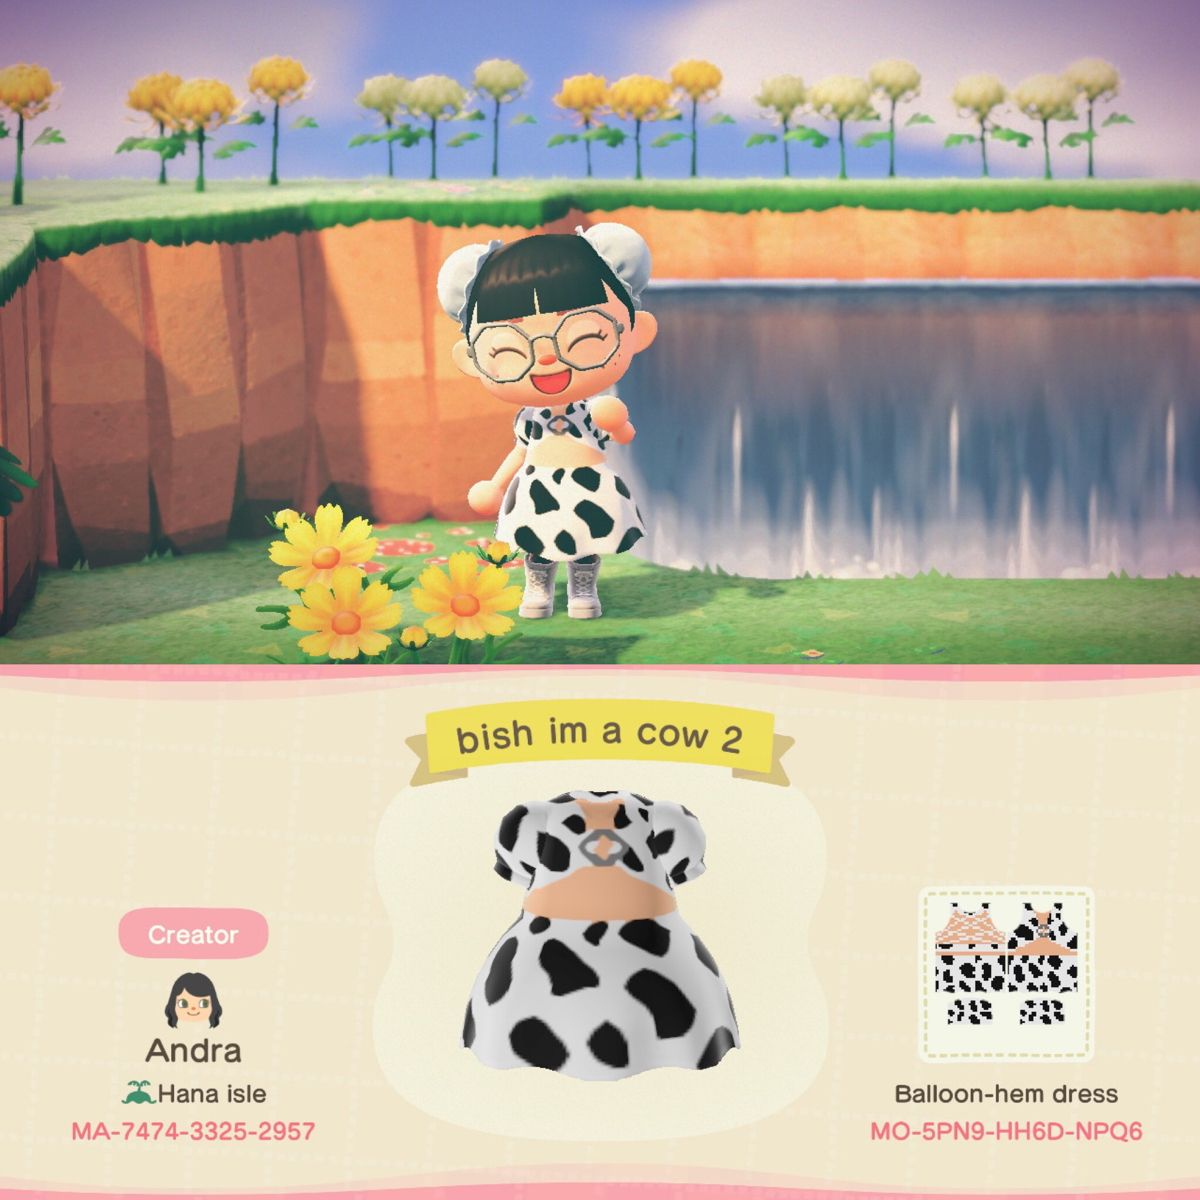 10++ Animal crossing outfit ideas images